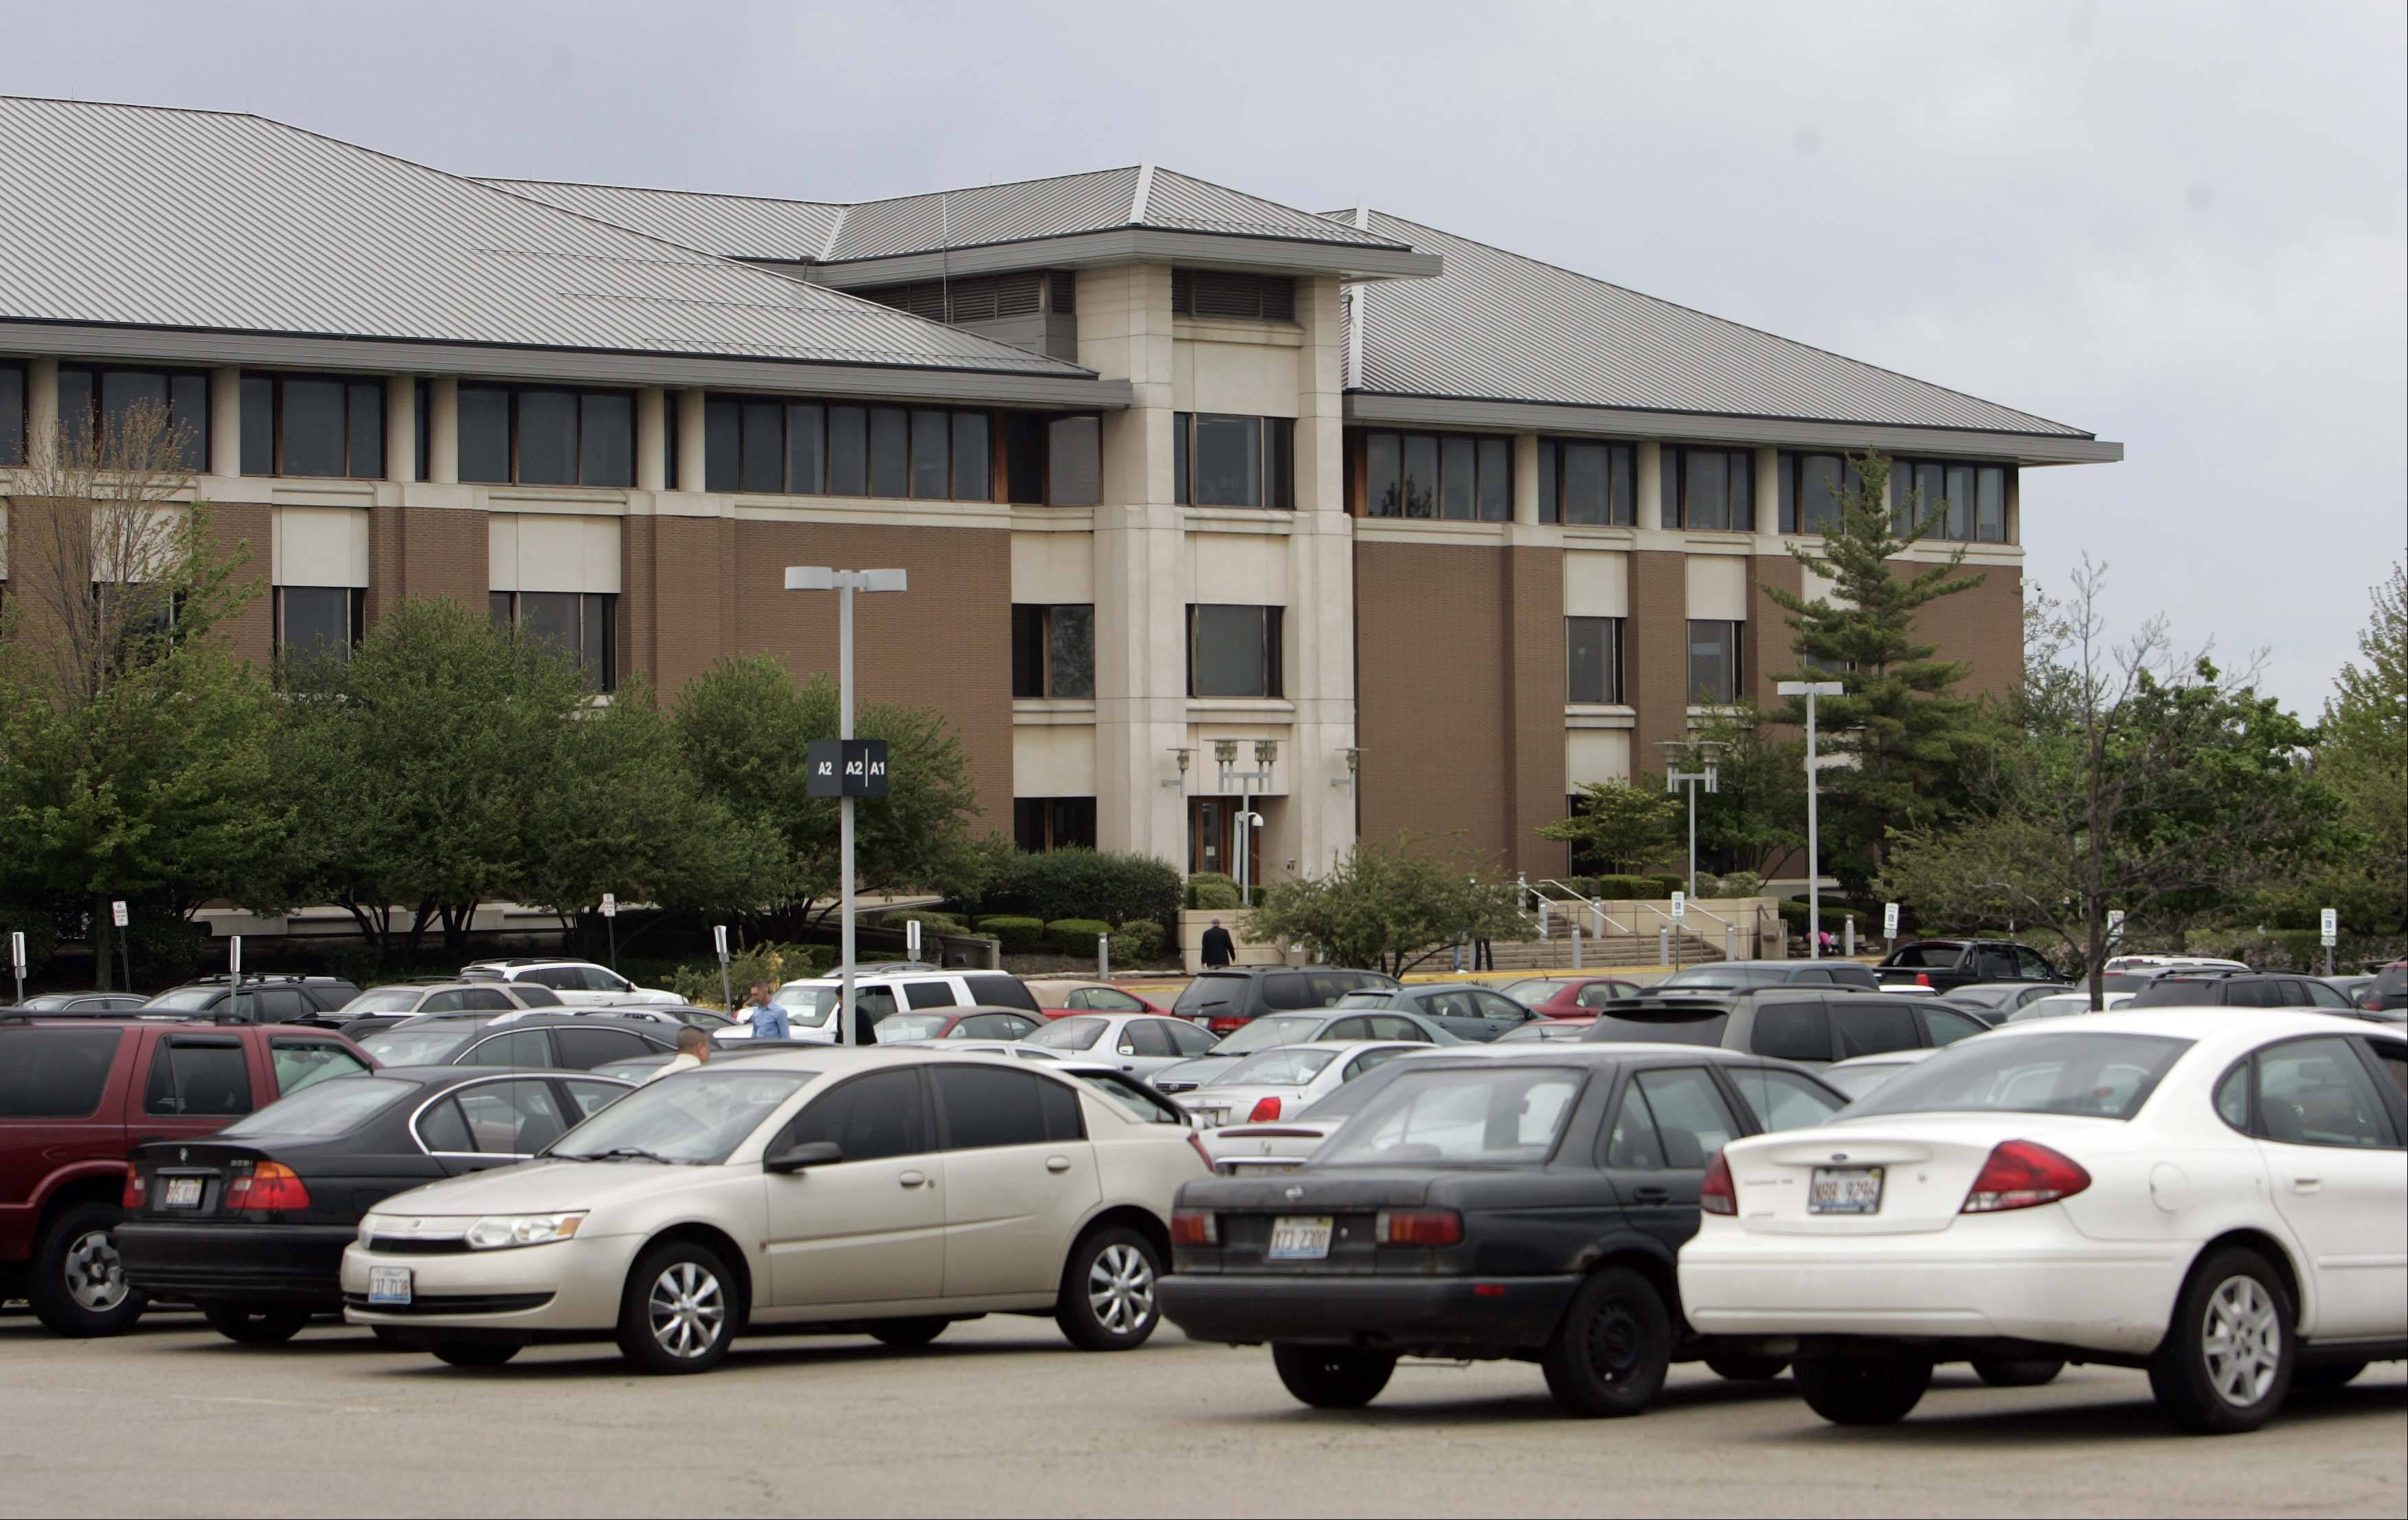 The Kane County Judicial Center in St. Charles, along with two branch courts, were closed down Wednesday morning after officials received bomb threats directed at the locations.